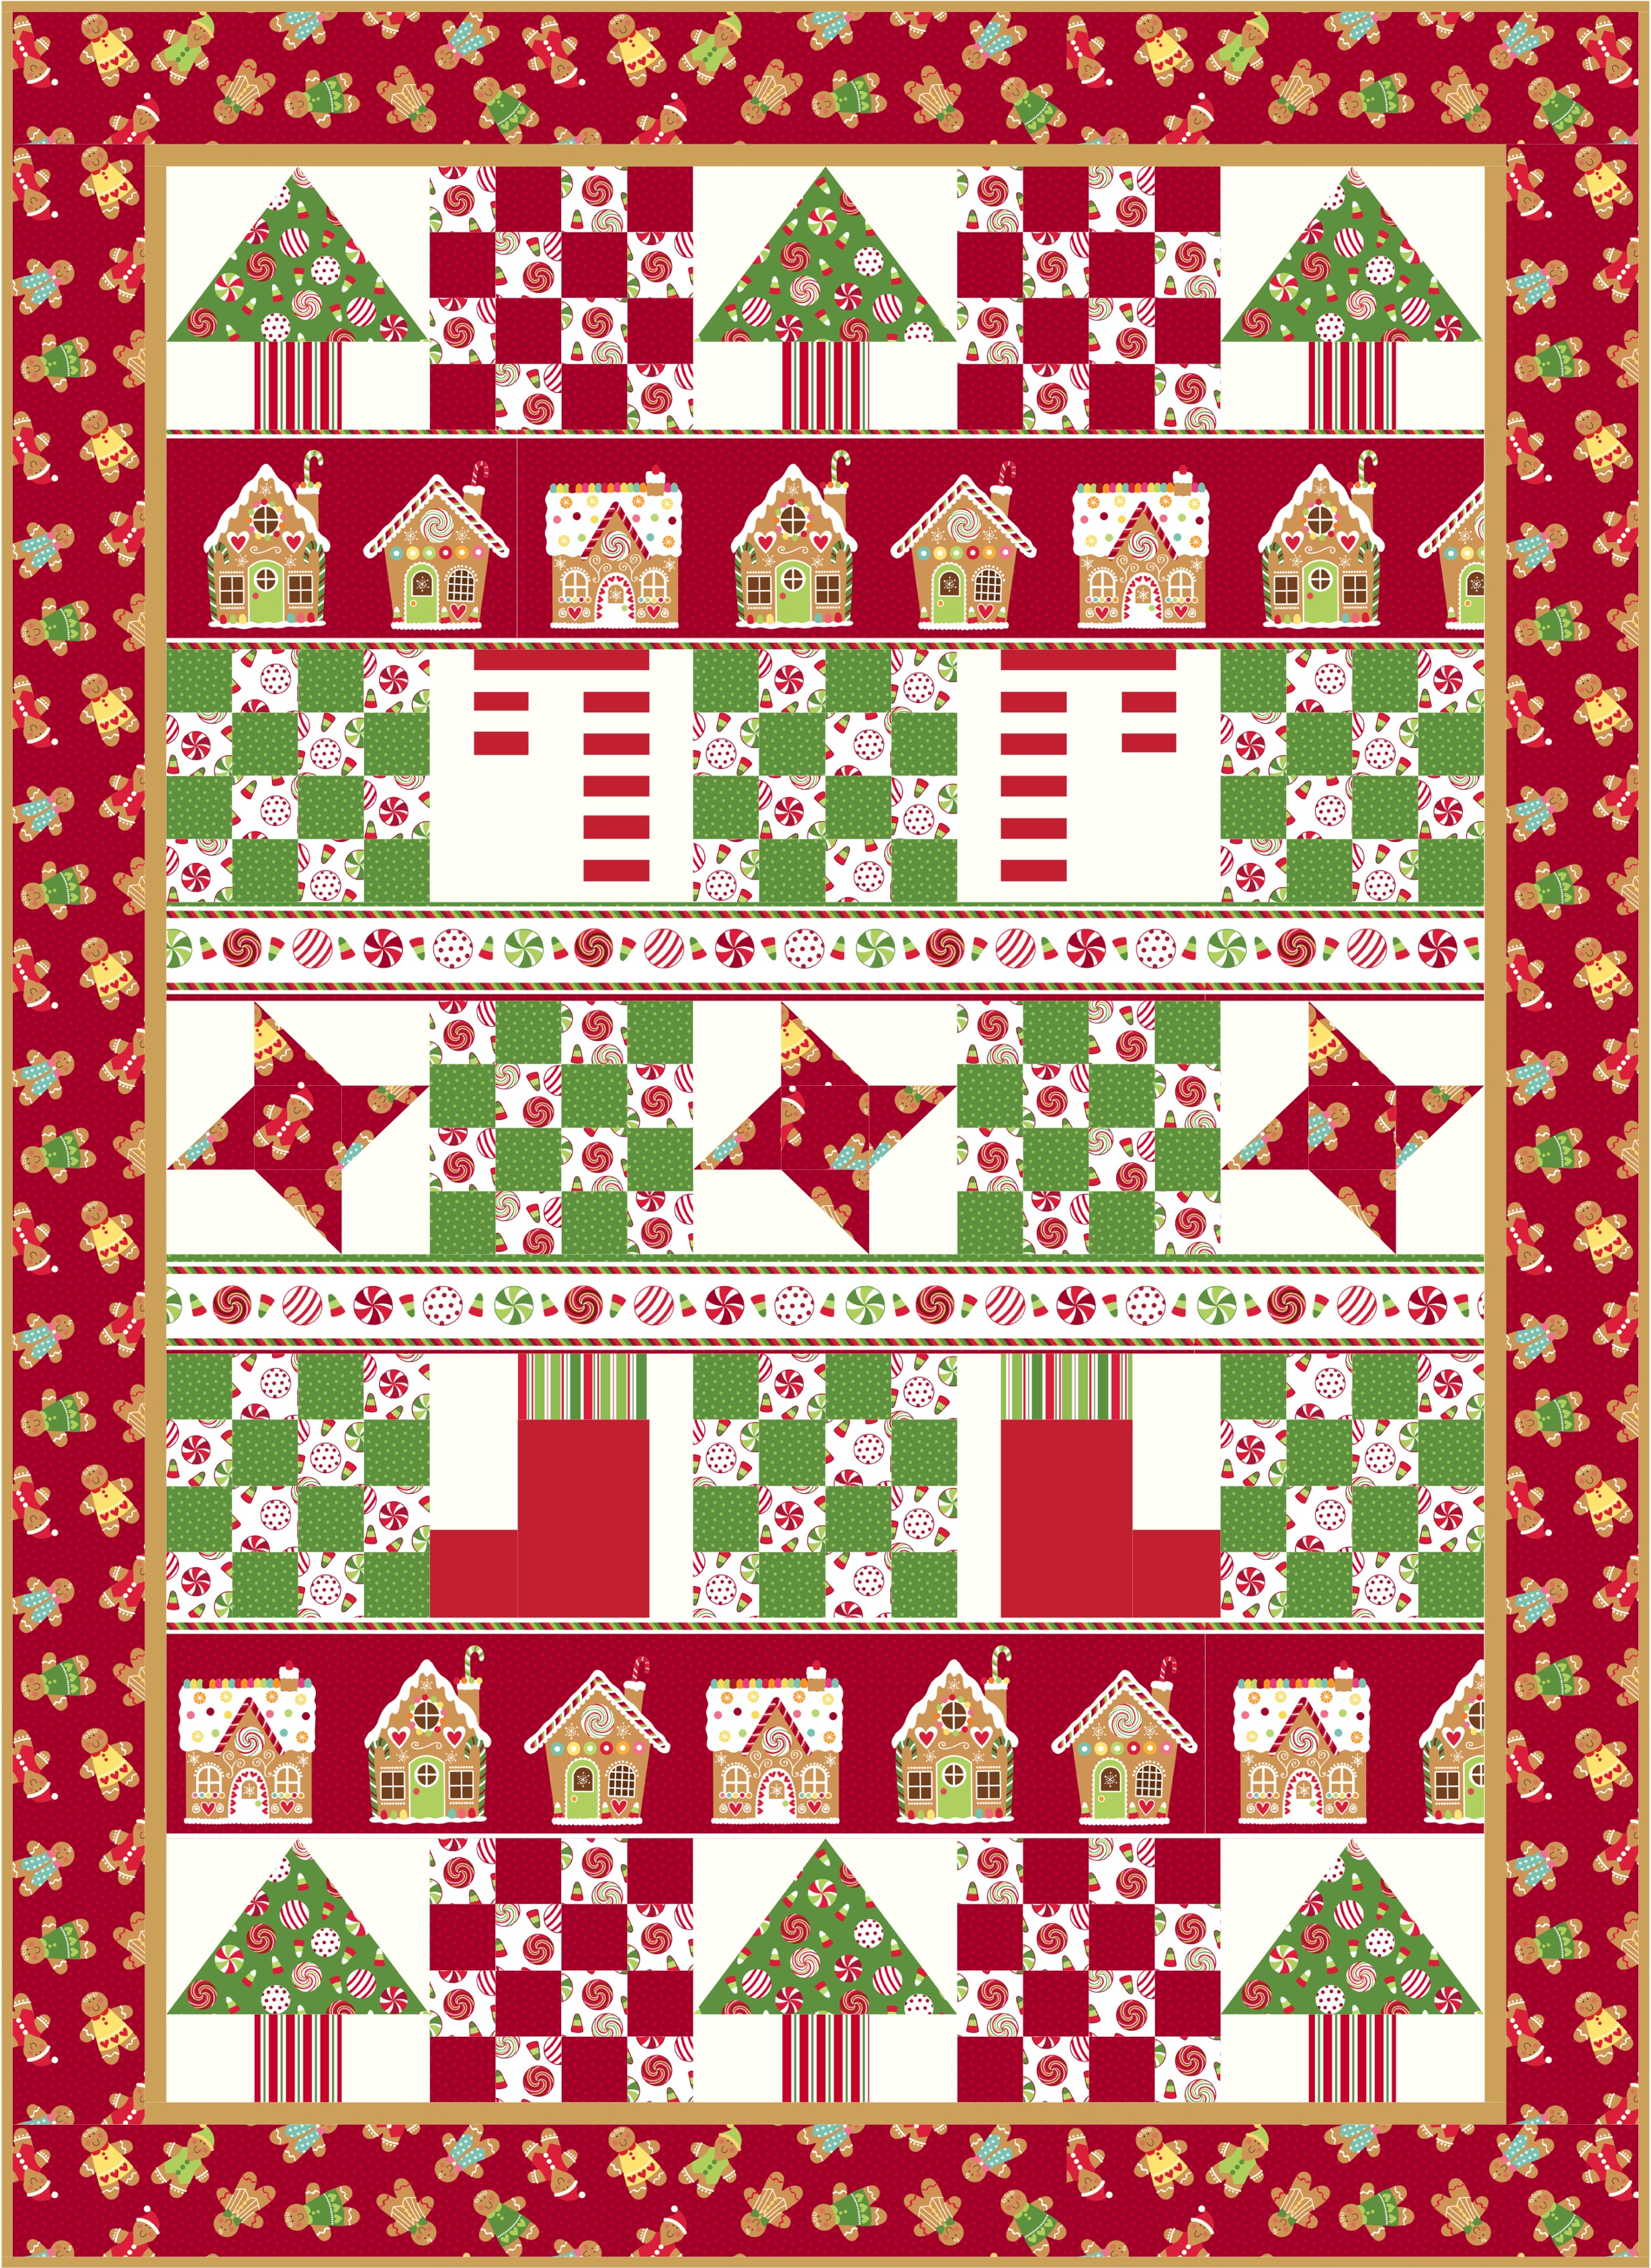 Christmas Quilt Patterns.Peppermint Candy Christmas Quilt Pattern Download